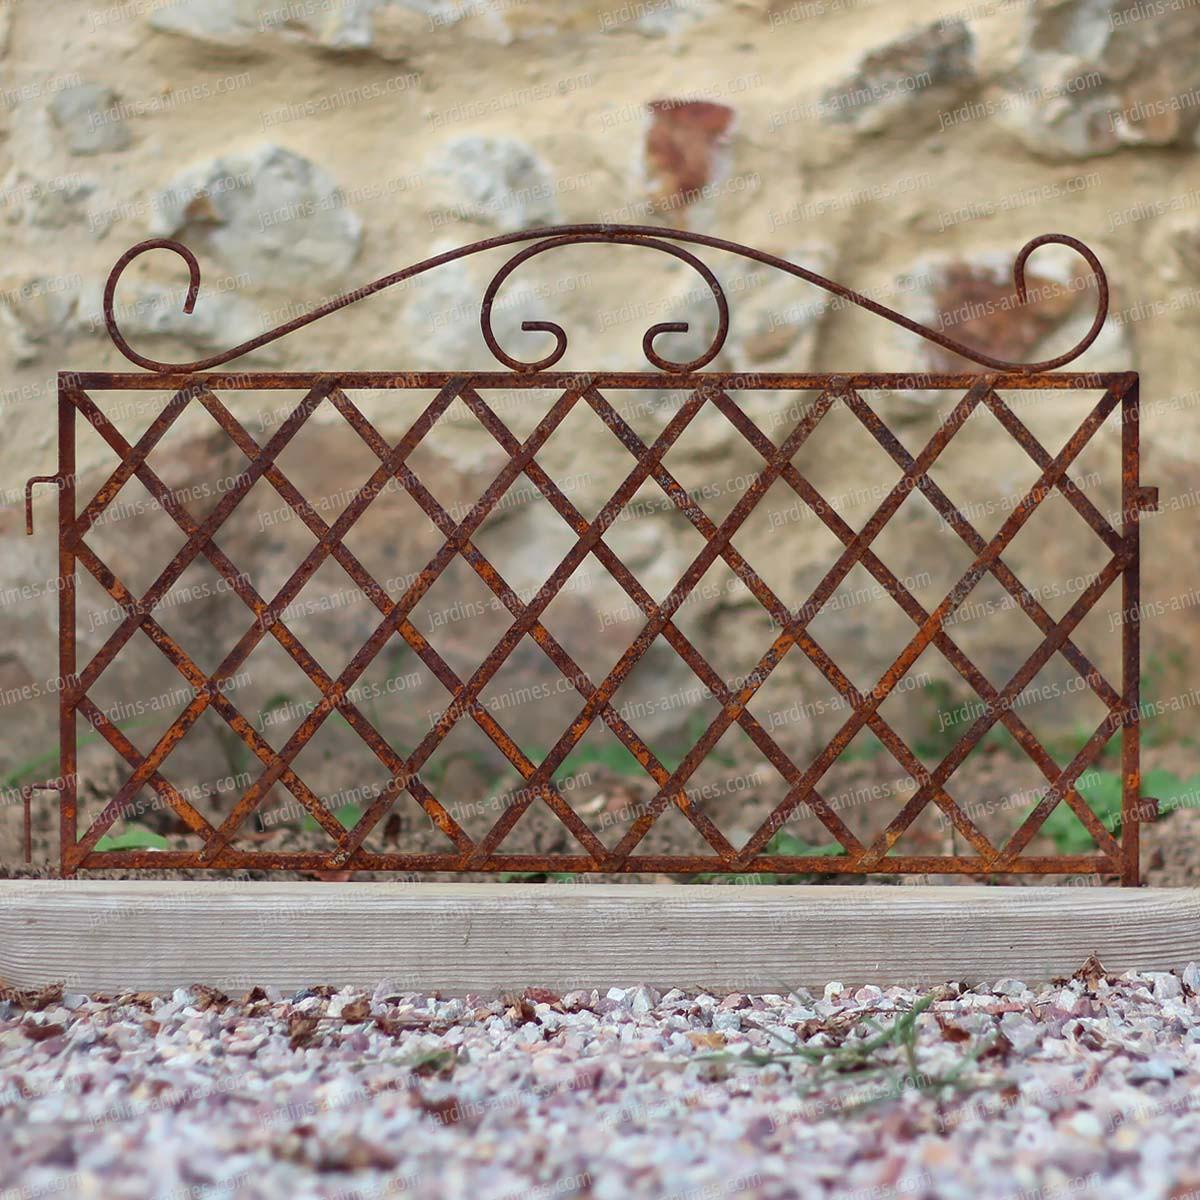 Bordure croisillon en fer brut bordure de jardin for Bordure metal pour jardin